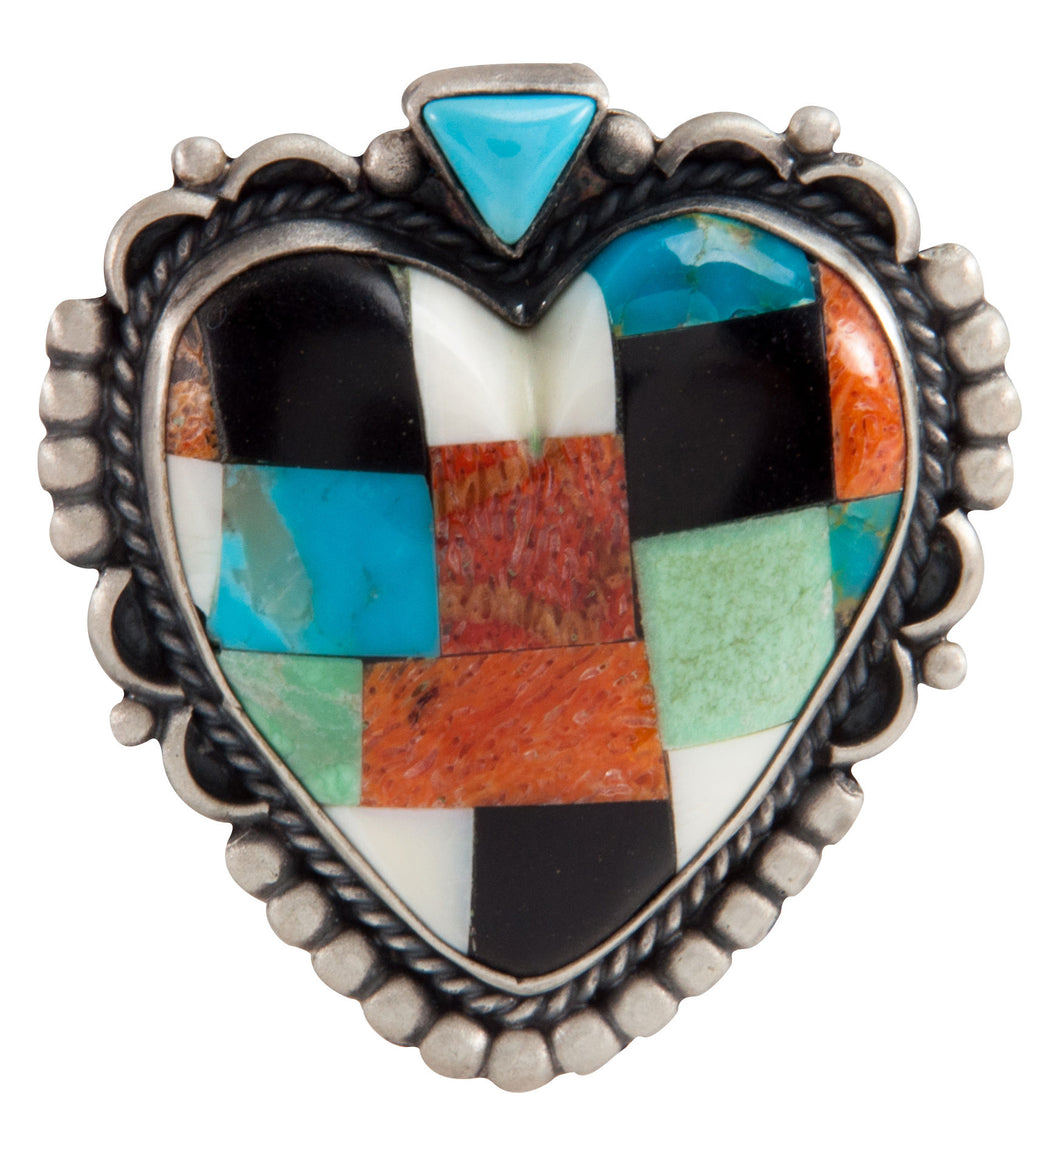 Isleta Pueblo Native American Turquoise Inlay Heart Pin and Pendant SKU225231